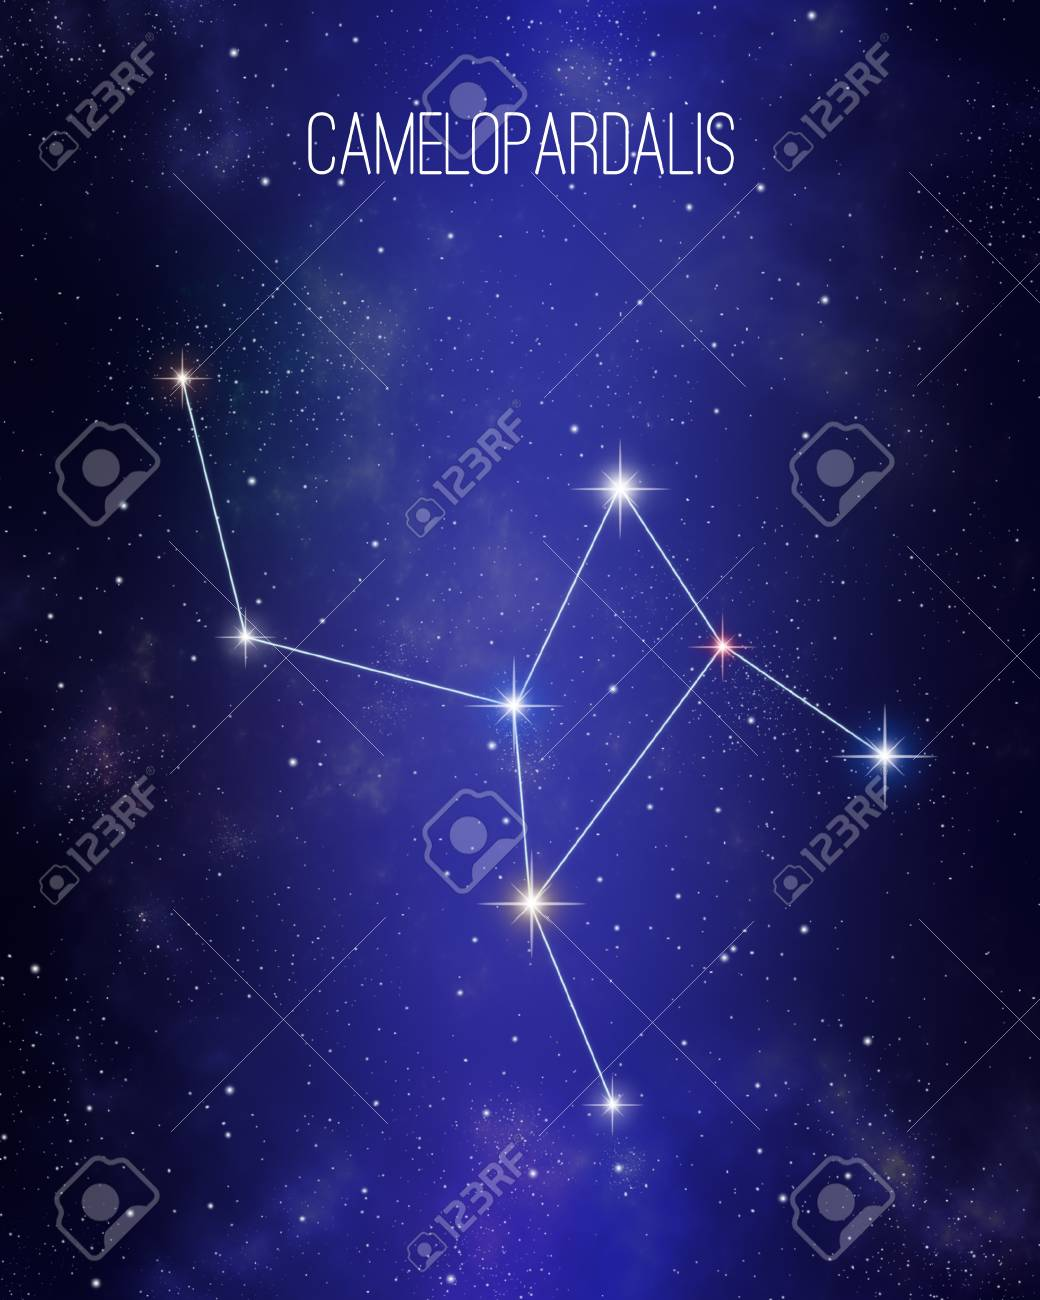 Camelopardalis The Giraffe Constellation On A Starry Space 1040x1300